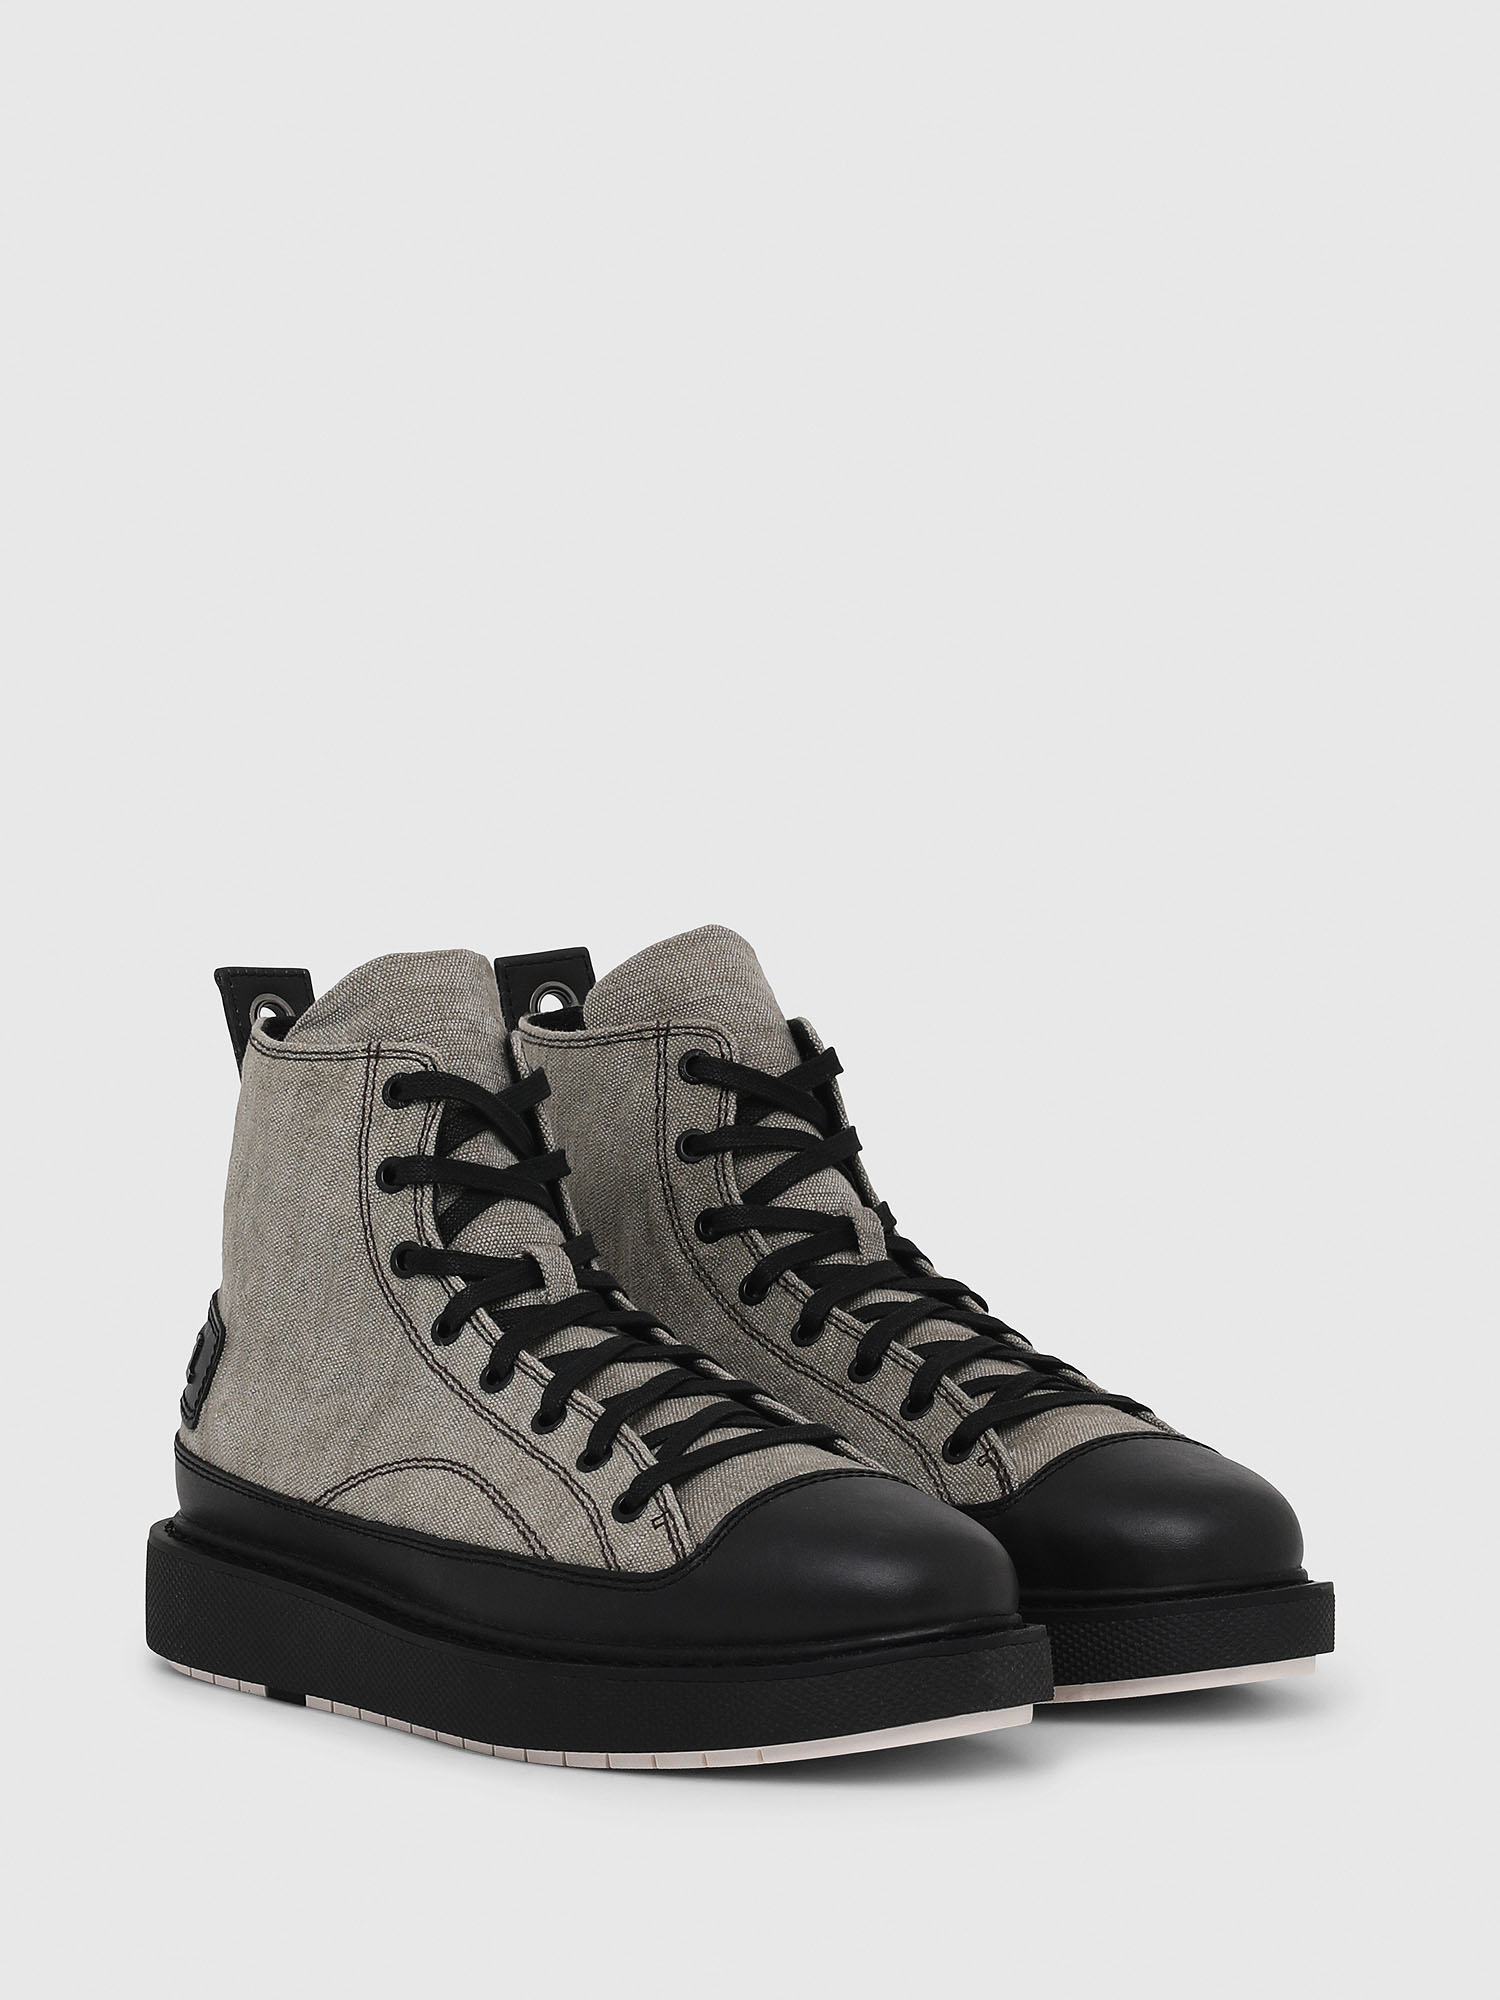 Diesel - H-CAGE DBB,  - Boots - Image 2